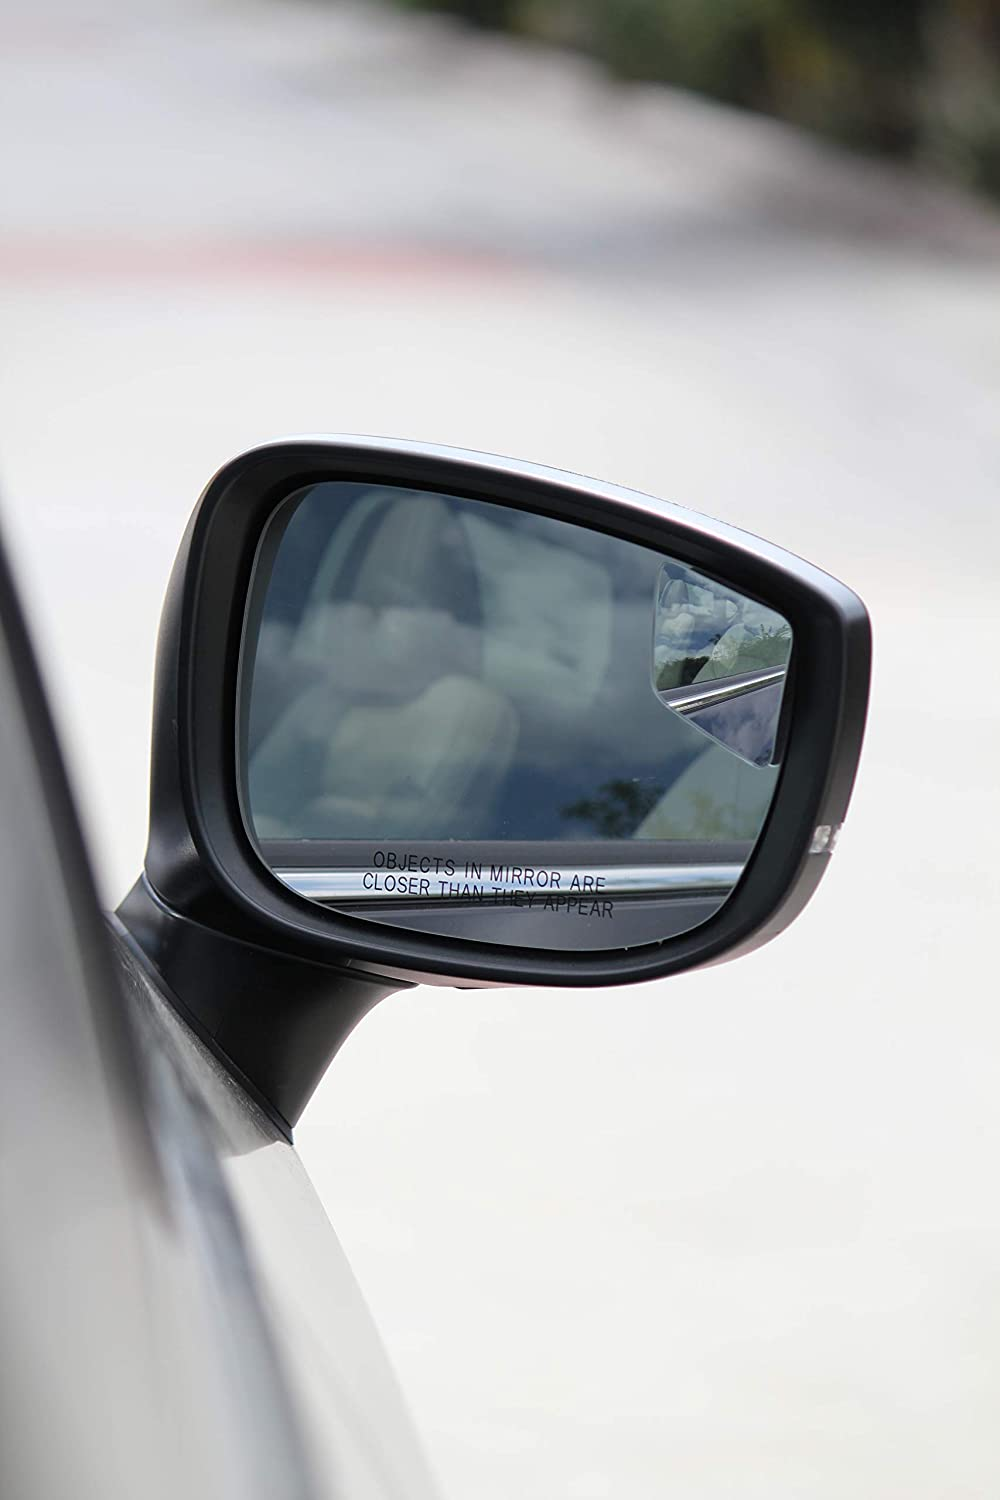 Rhombus 4 Blindspot Mirror by Safe View Company 2 Pack 63x50mm Convex Mirror Seamlessly Contours to Your Cars Side Mirror Frameless Design Safer Lane Changes Easy Installation HD Glass